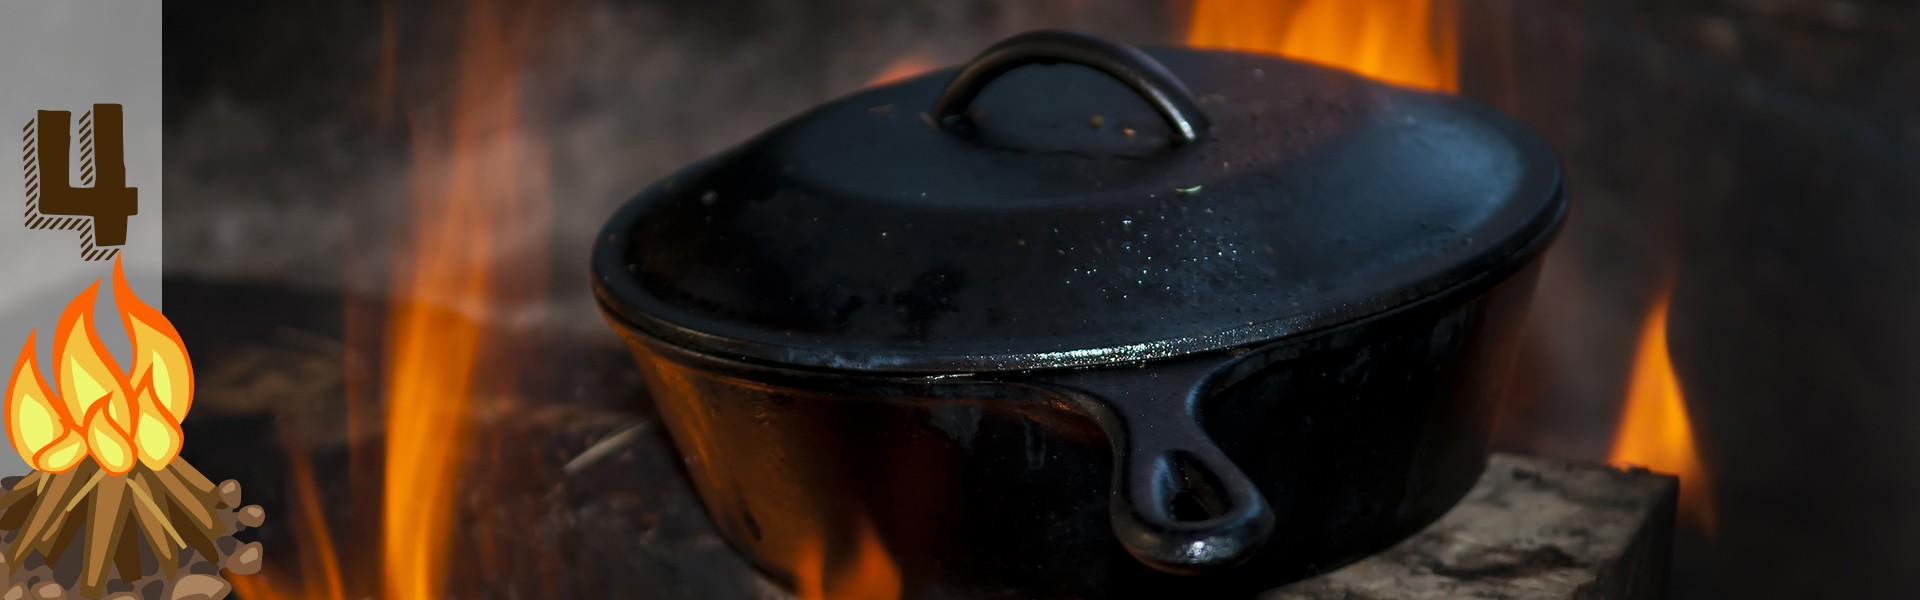 cast iron cooker over the fire